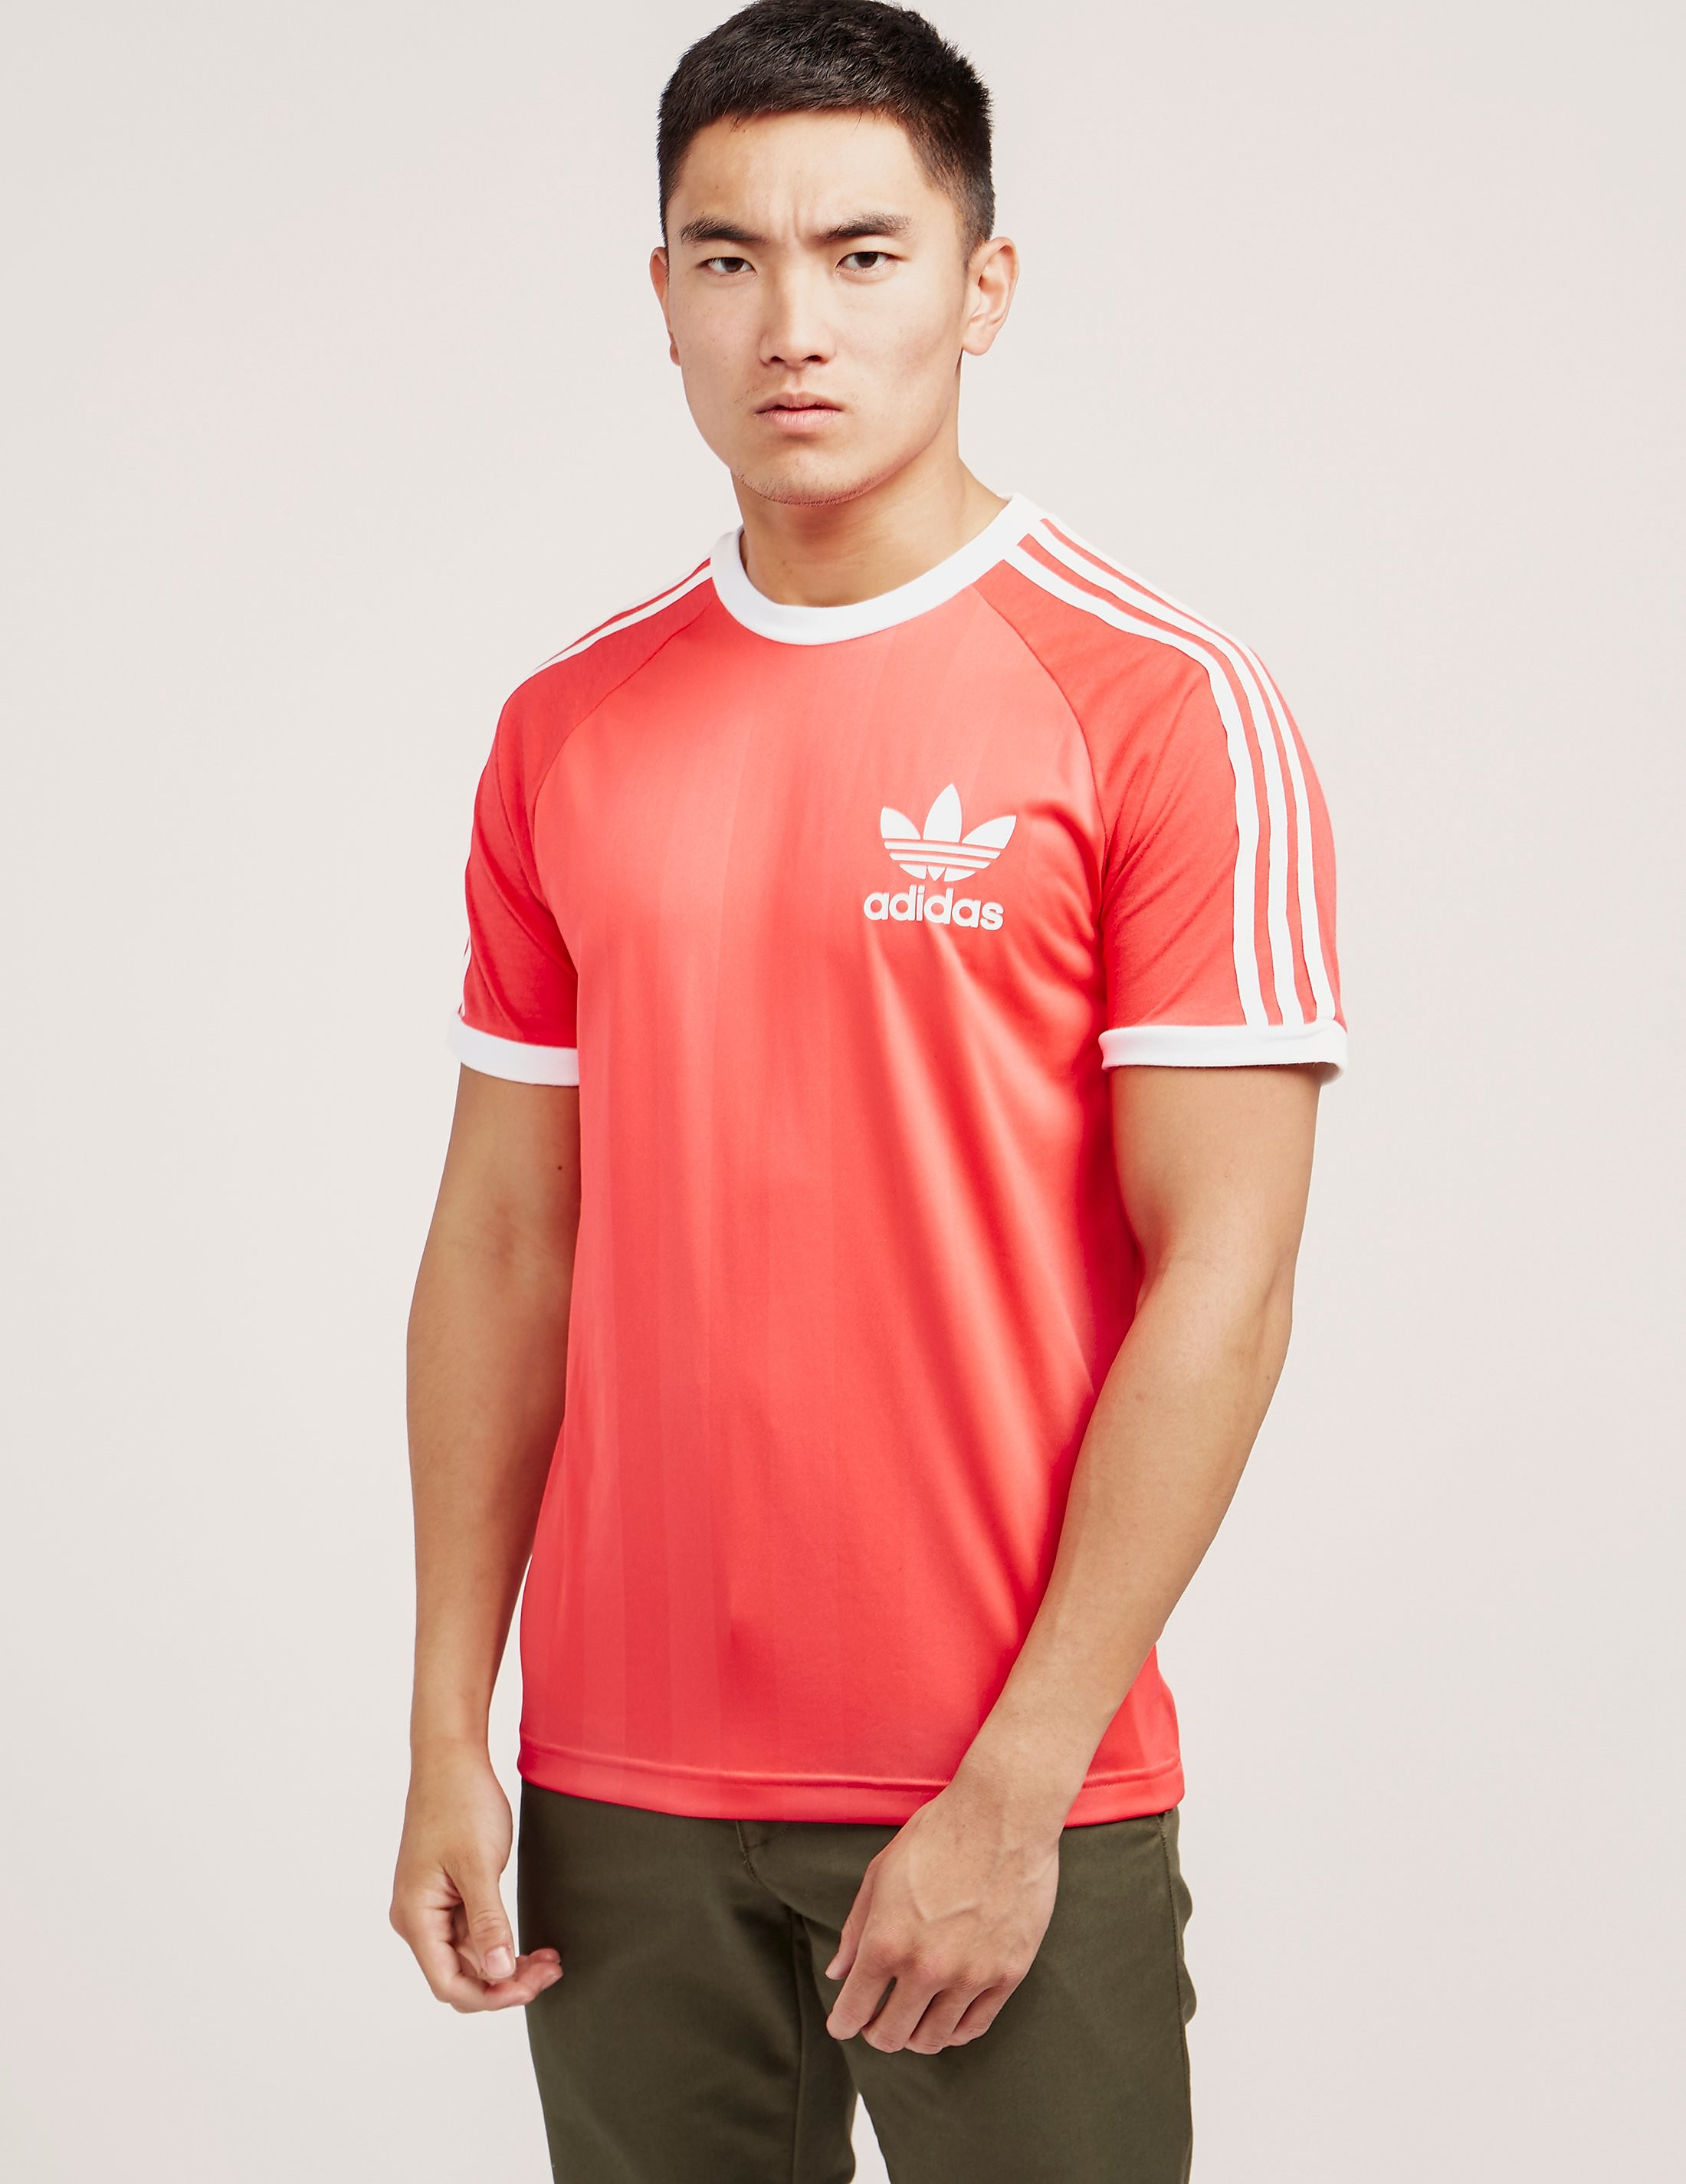 adidas Originals California Trefoil Short Sleeve T-Shirt